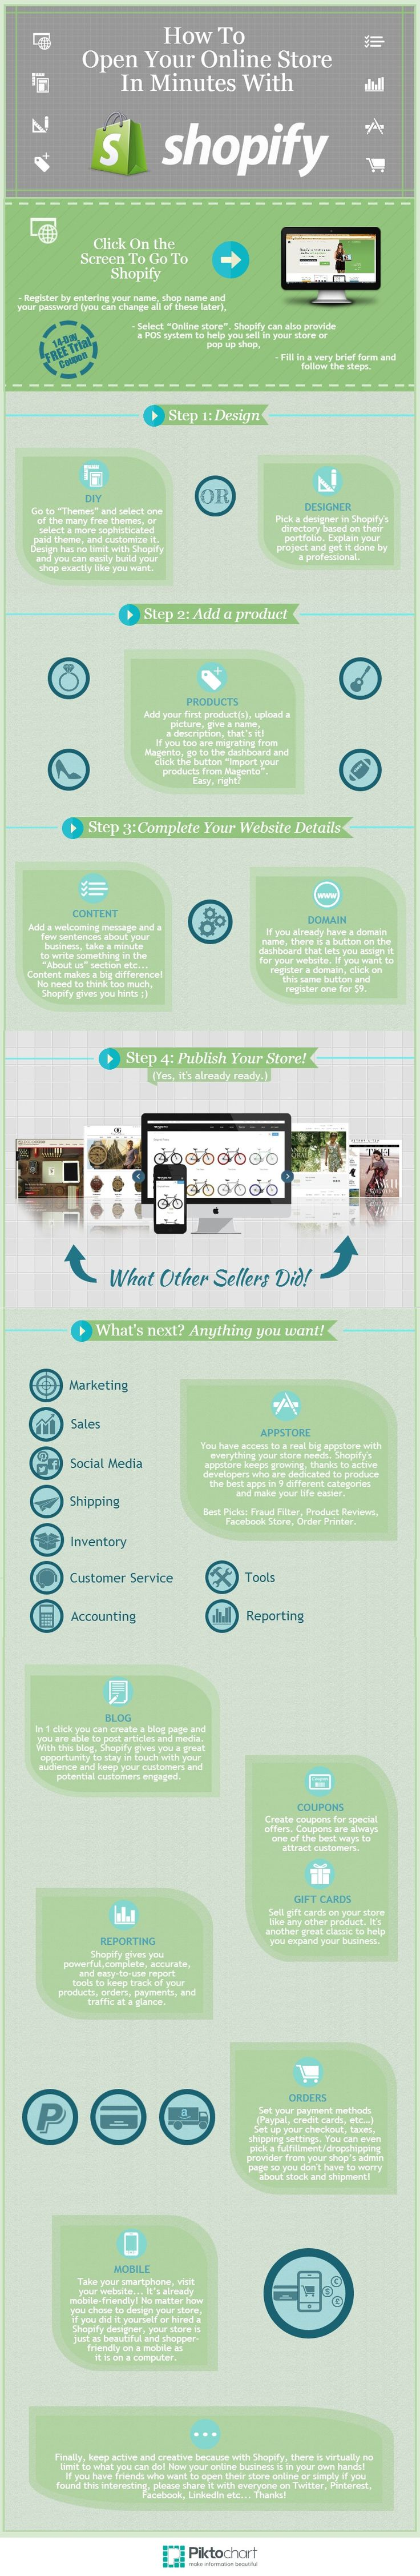 FREE TRIAL HERE: https://www.shopify.com/?ref=registration    How To Open Your Online Store In Minutes With Shopify. Start Your Online Shop And Sell Your Products Now!!! (Infographic)